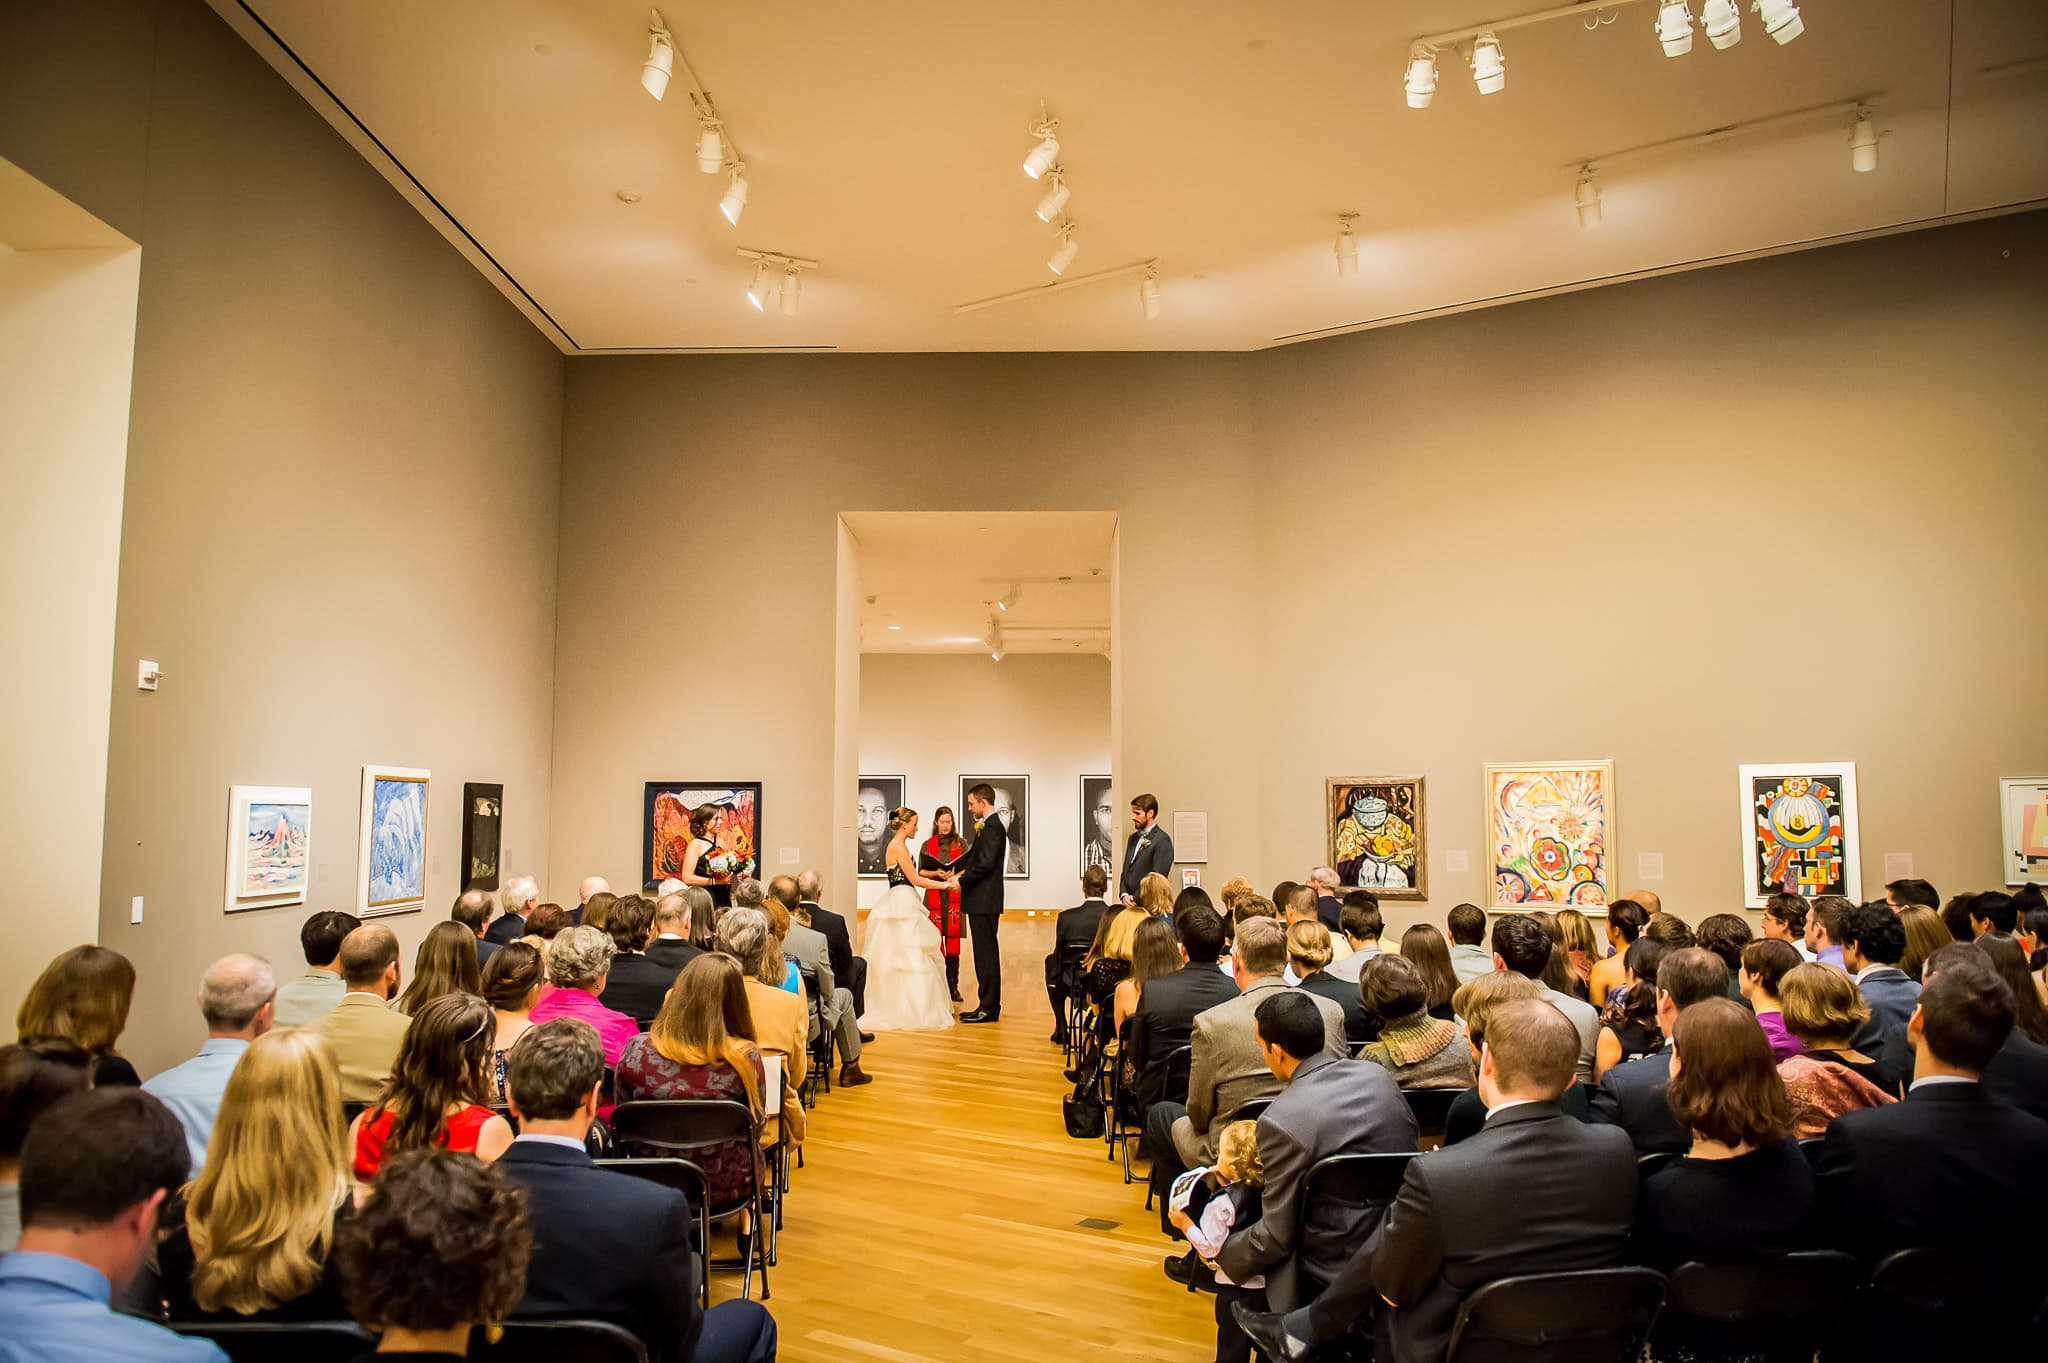 Real wedding ceremony at the Weisman Art Museum